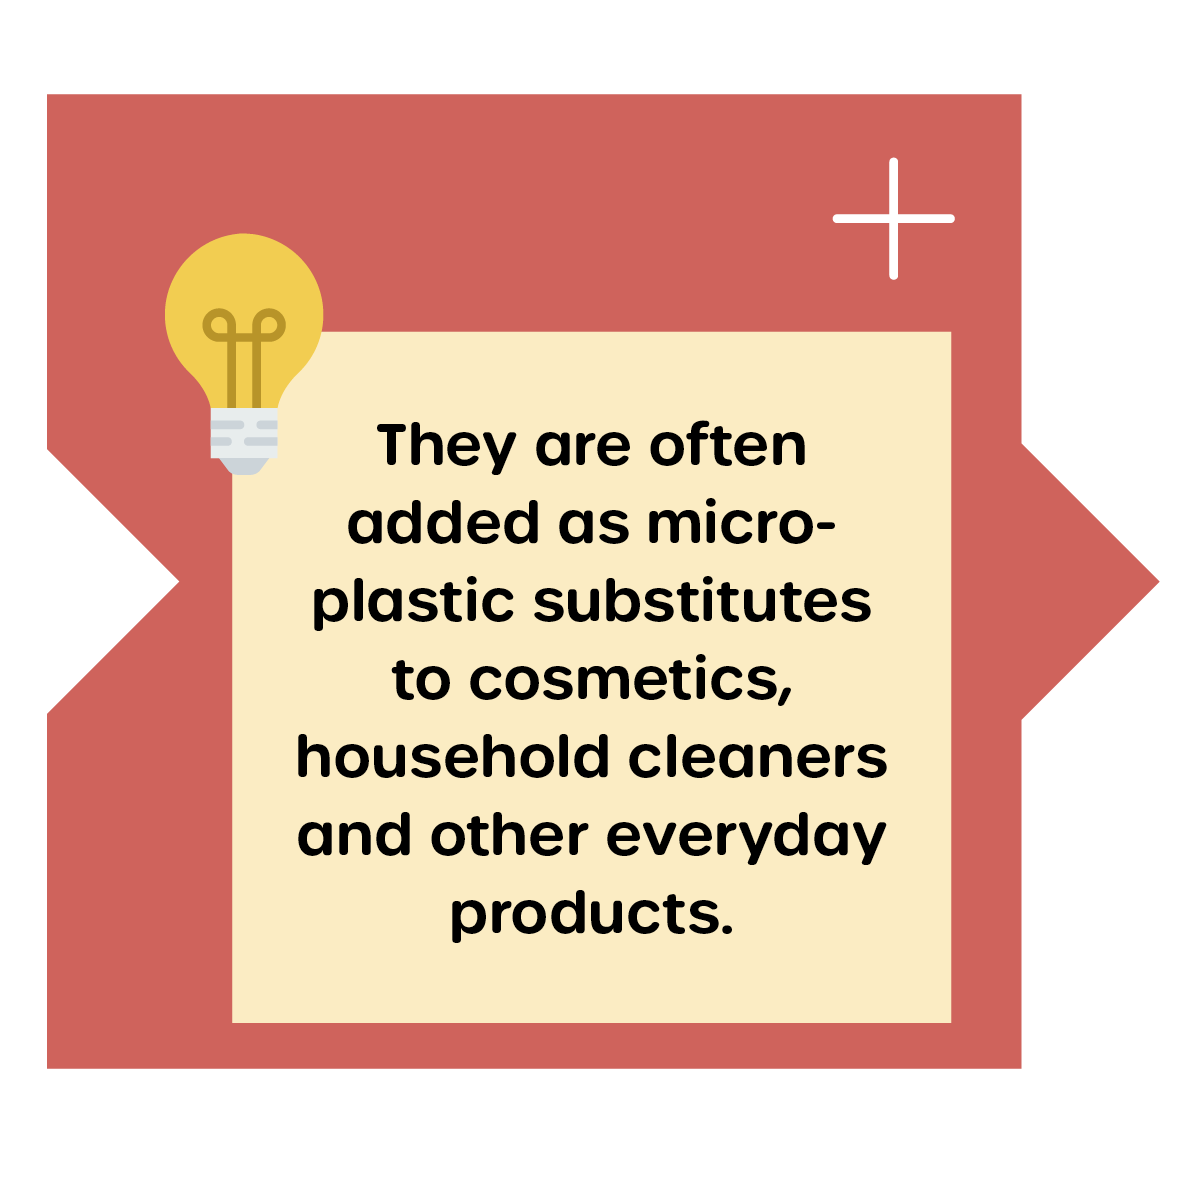 Alteratives of microplastics in daily care products